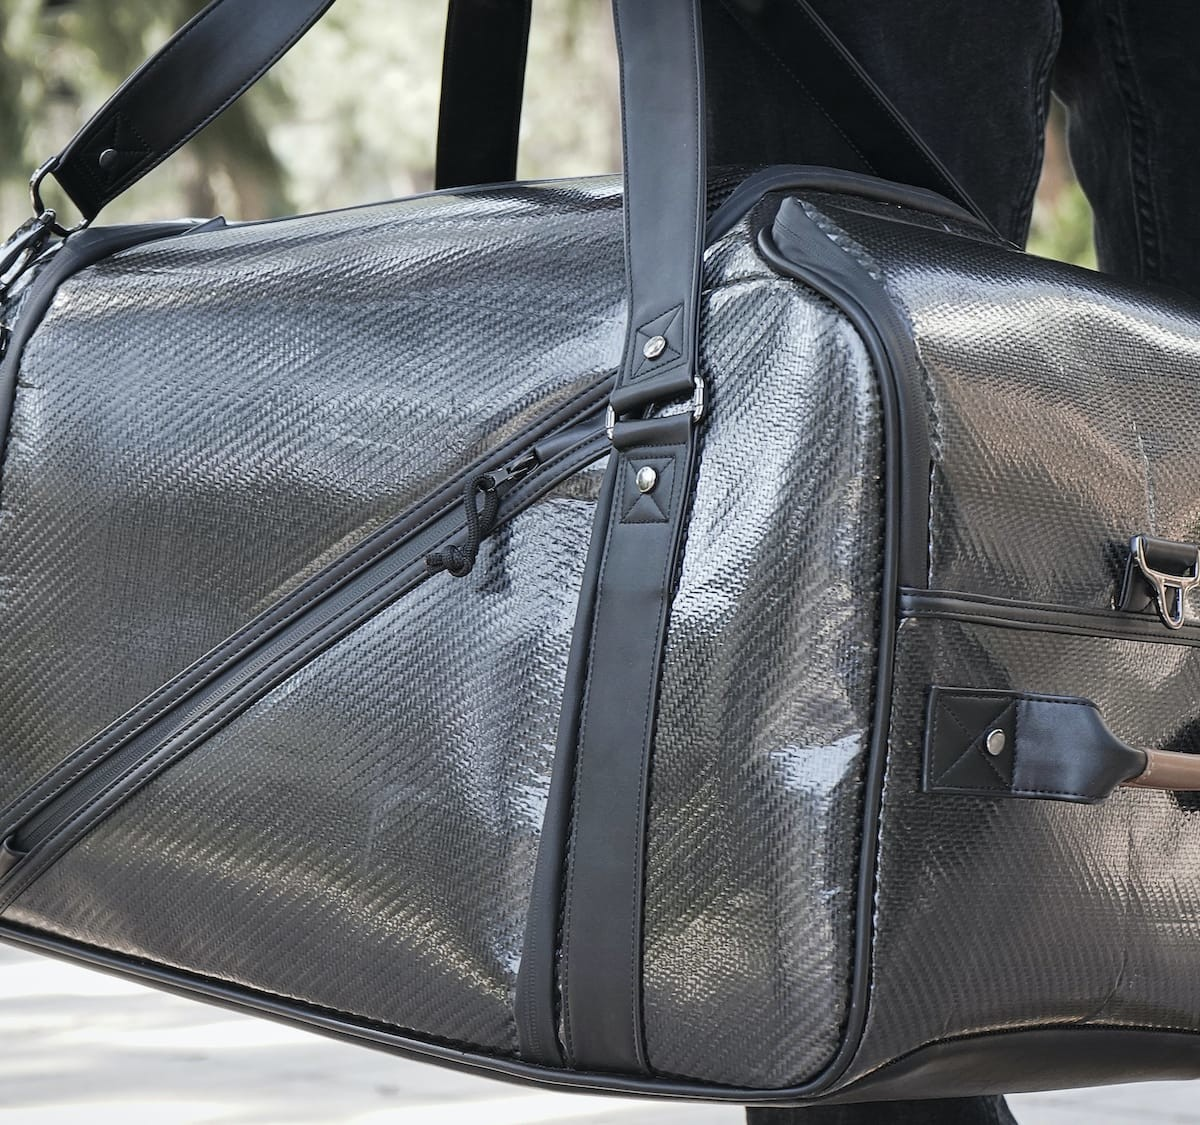 Stealth Smart Bags AI baggage use camera algorithms to warn you of danger